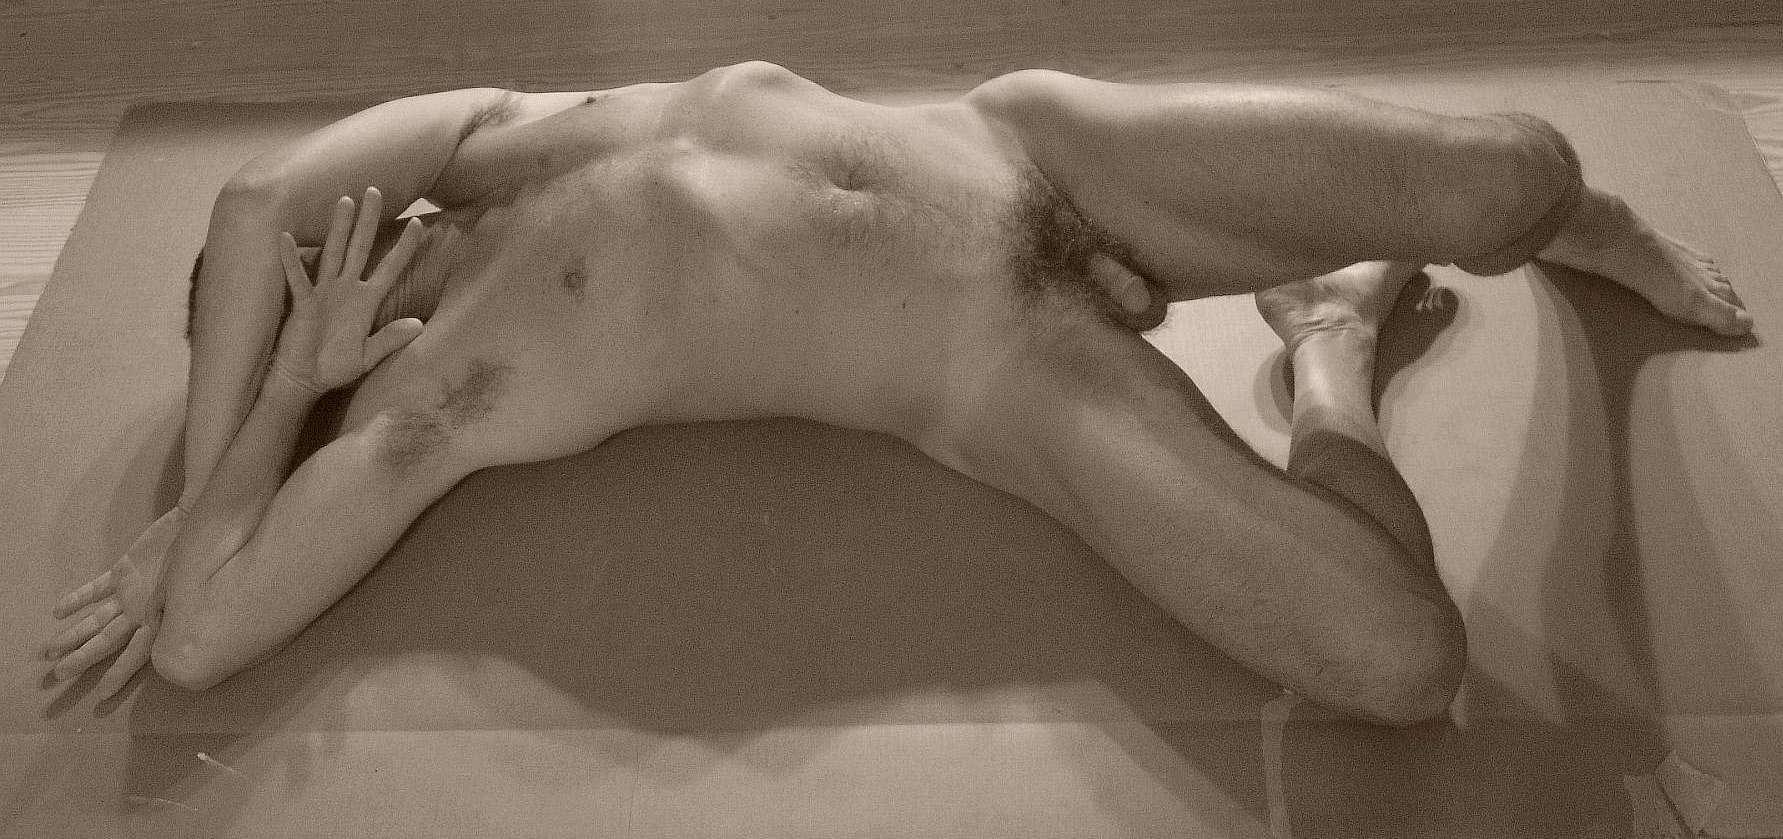 File:A Male Nude photo 5b.jpg